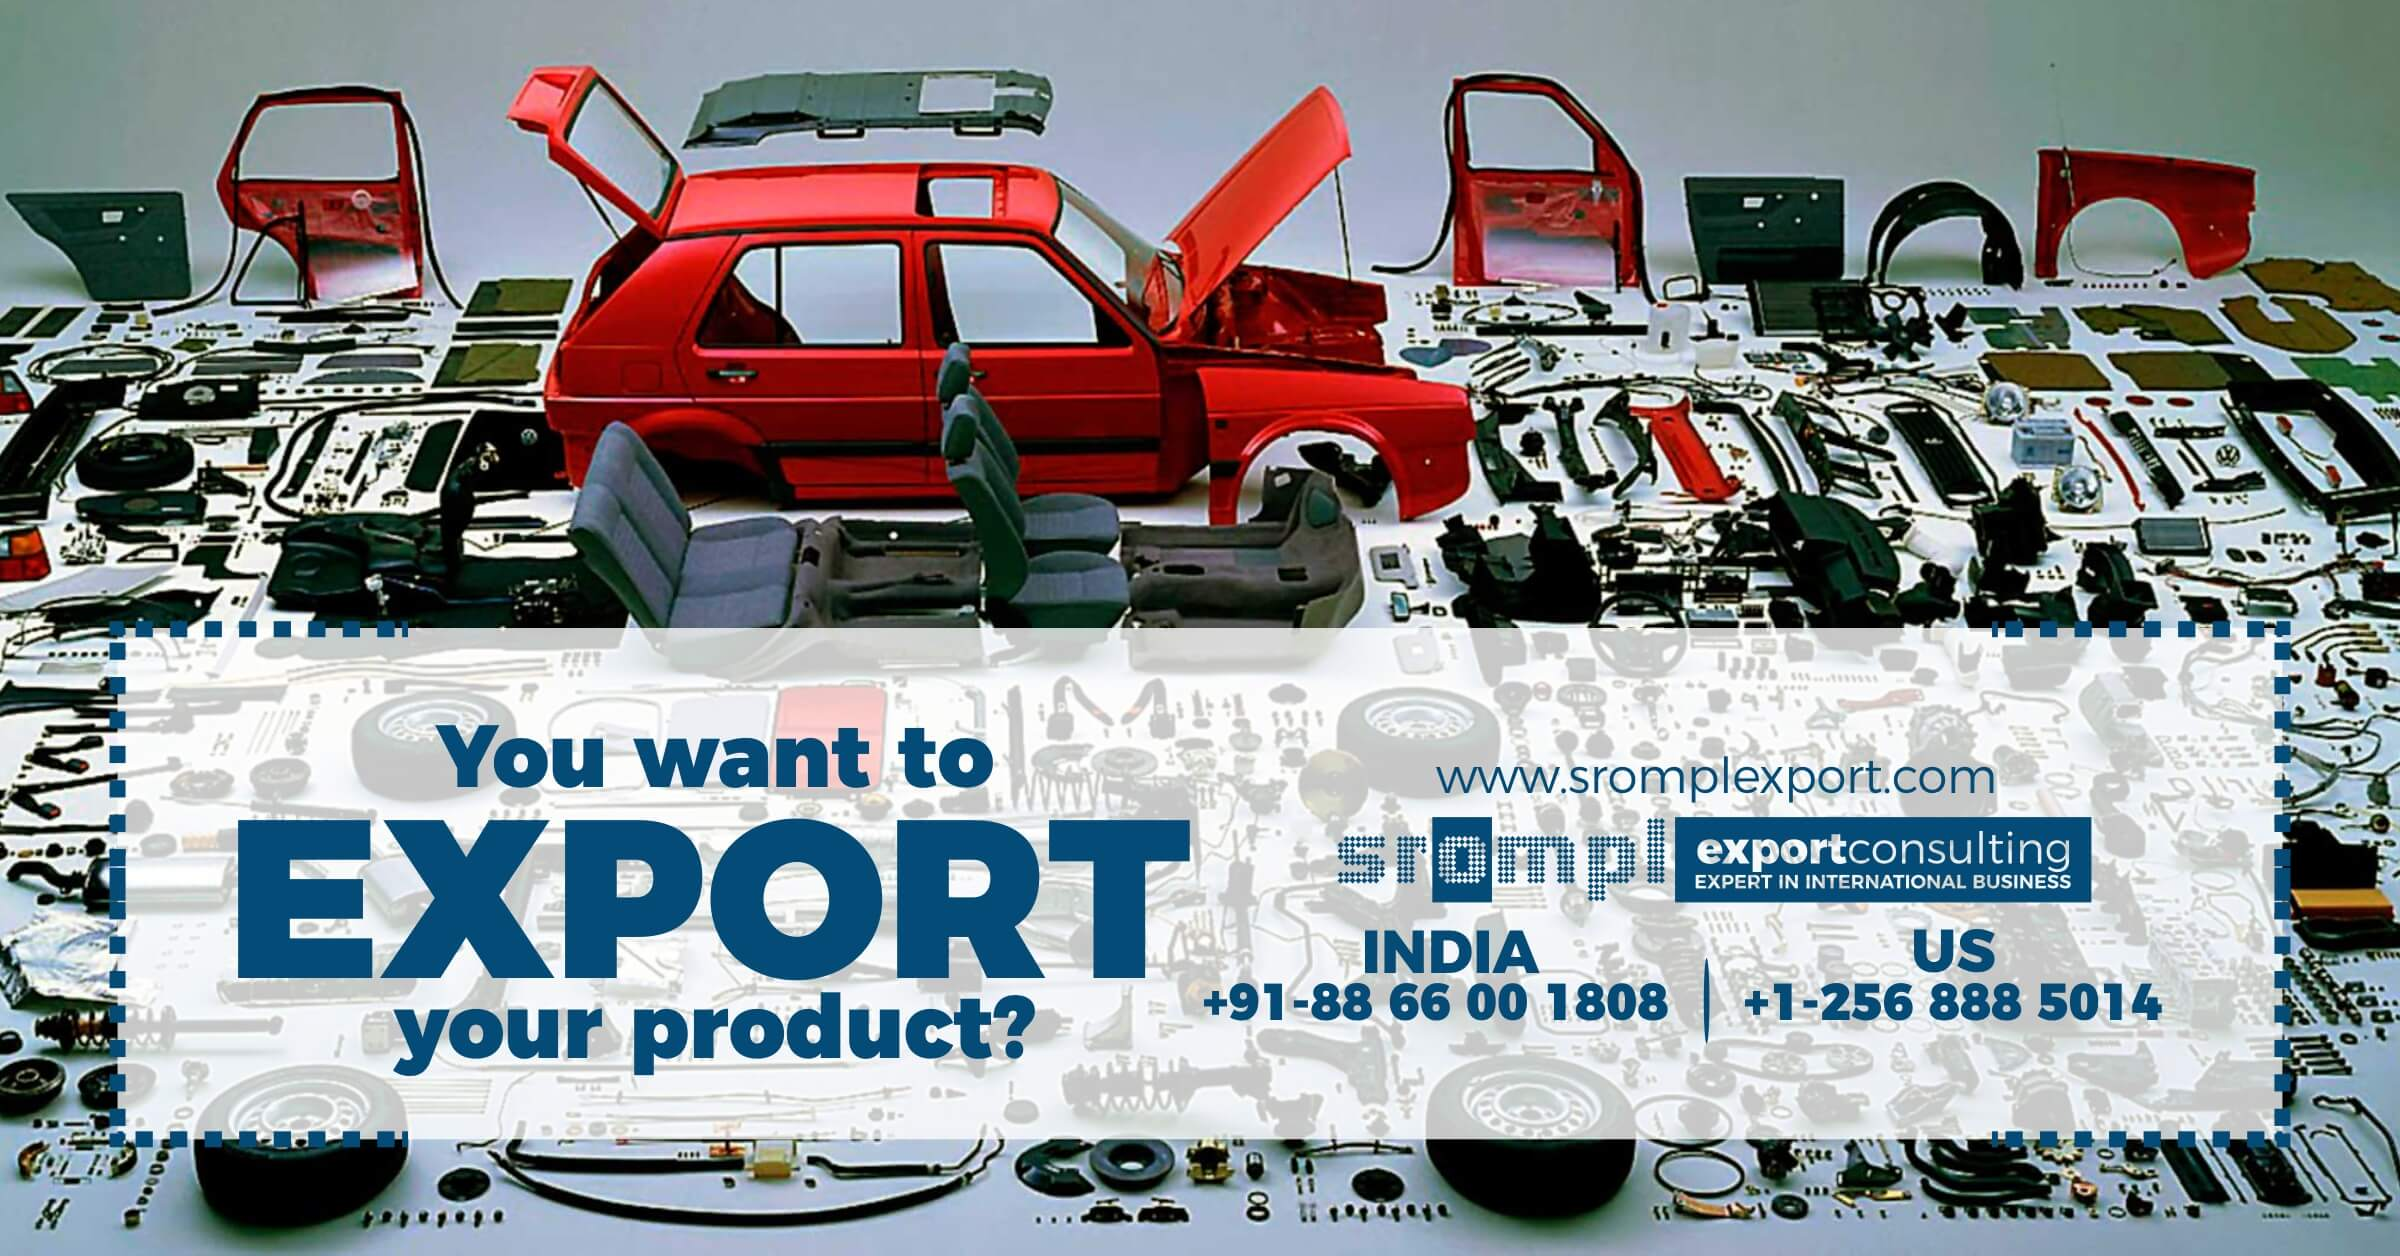 AUTOMOBILES, FLUID SEALING PRODUCTS, INDUSTRIALS, MARINE PRODUCTS, ENGINEERING PRODUCTS, AGRICULTURAL IMPLEMENTS Engineering Goods & Equipment,AUTOMOBILES, FLUID SEALING PRODUCTS, INDUSTRIALS, MARINE PRODUCTS, ENGINEERING PRODUCTS, AGRICULTURAL IMPLEMENTS